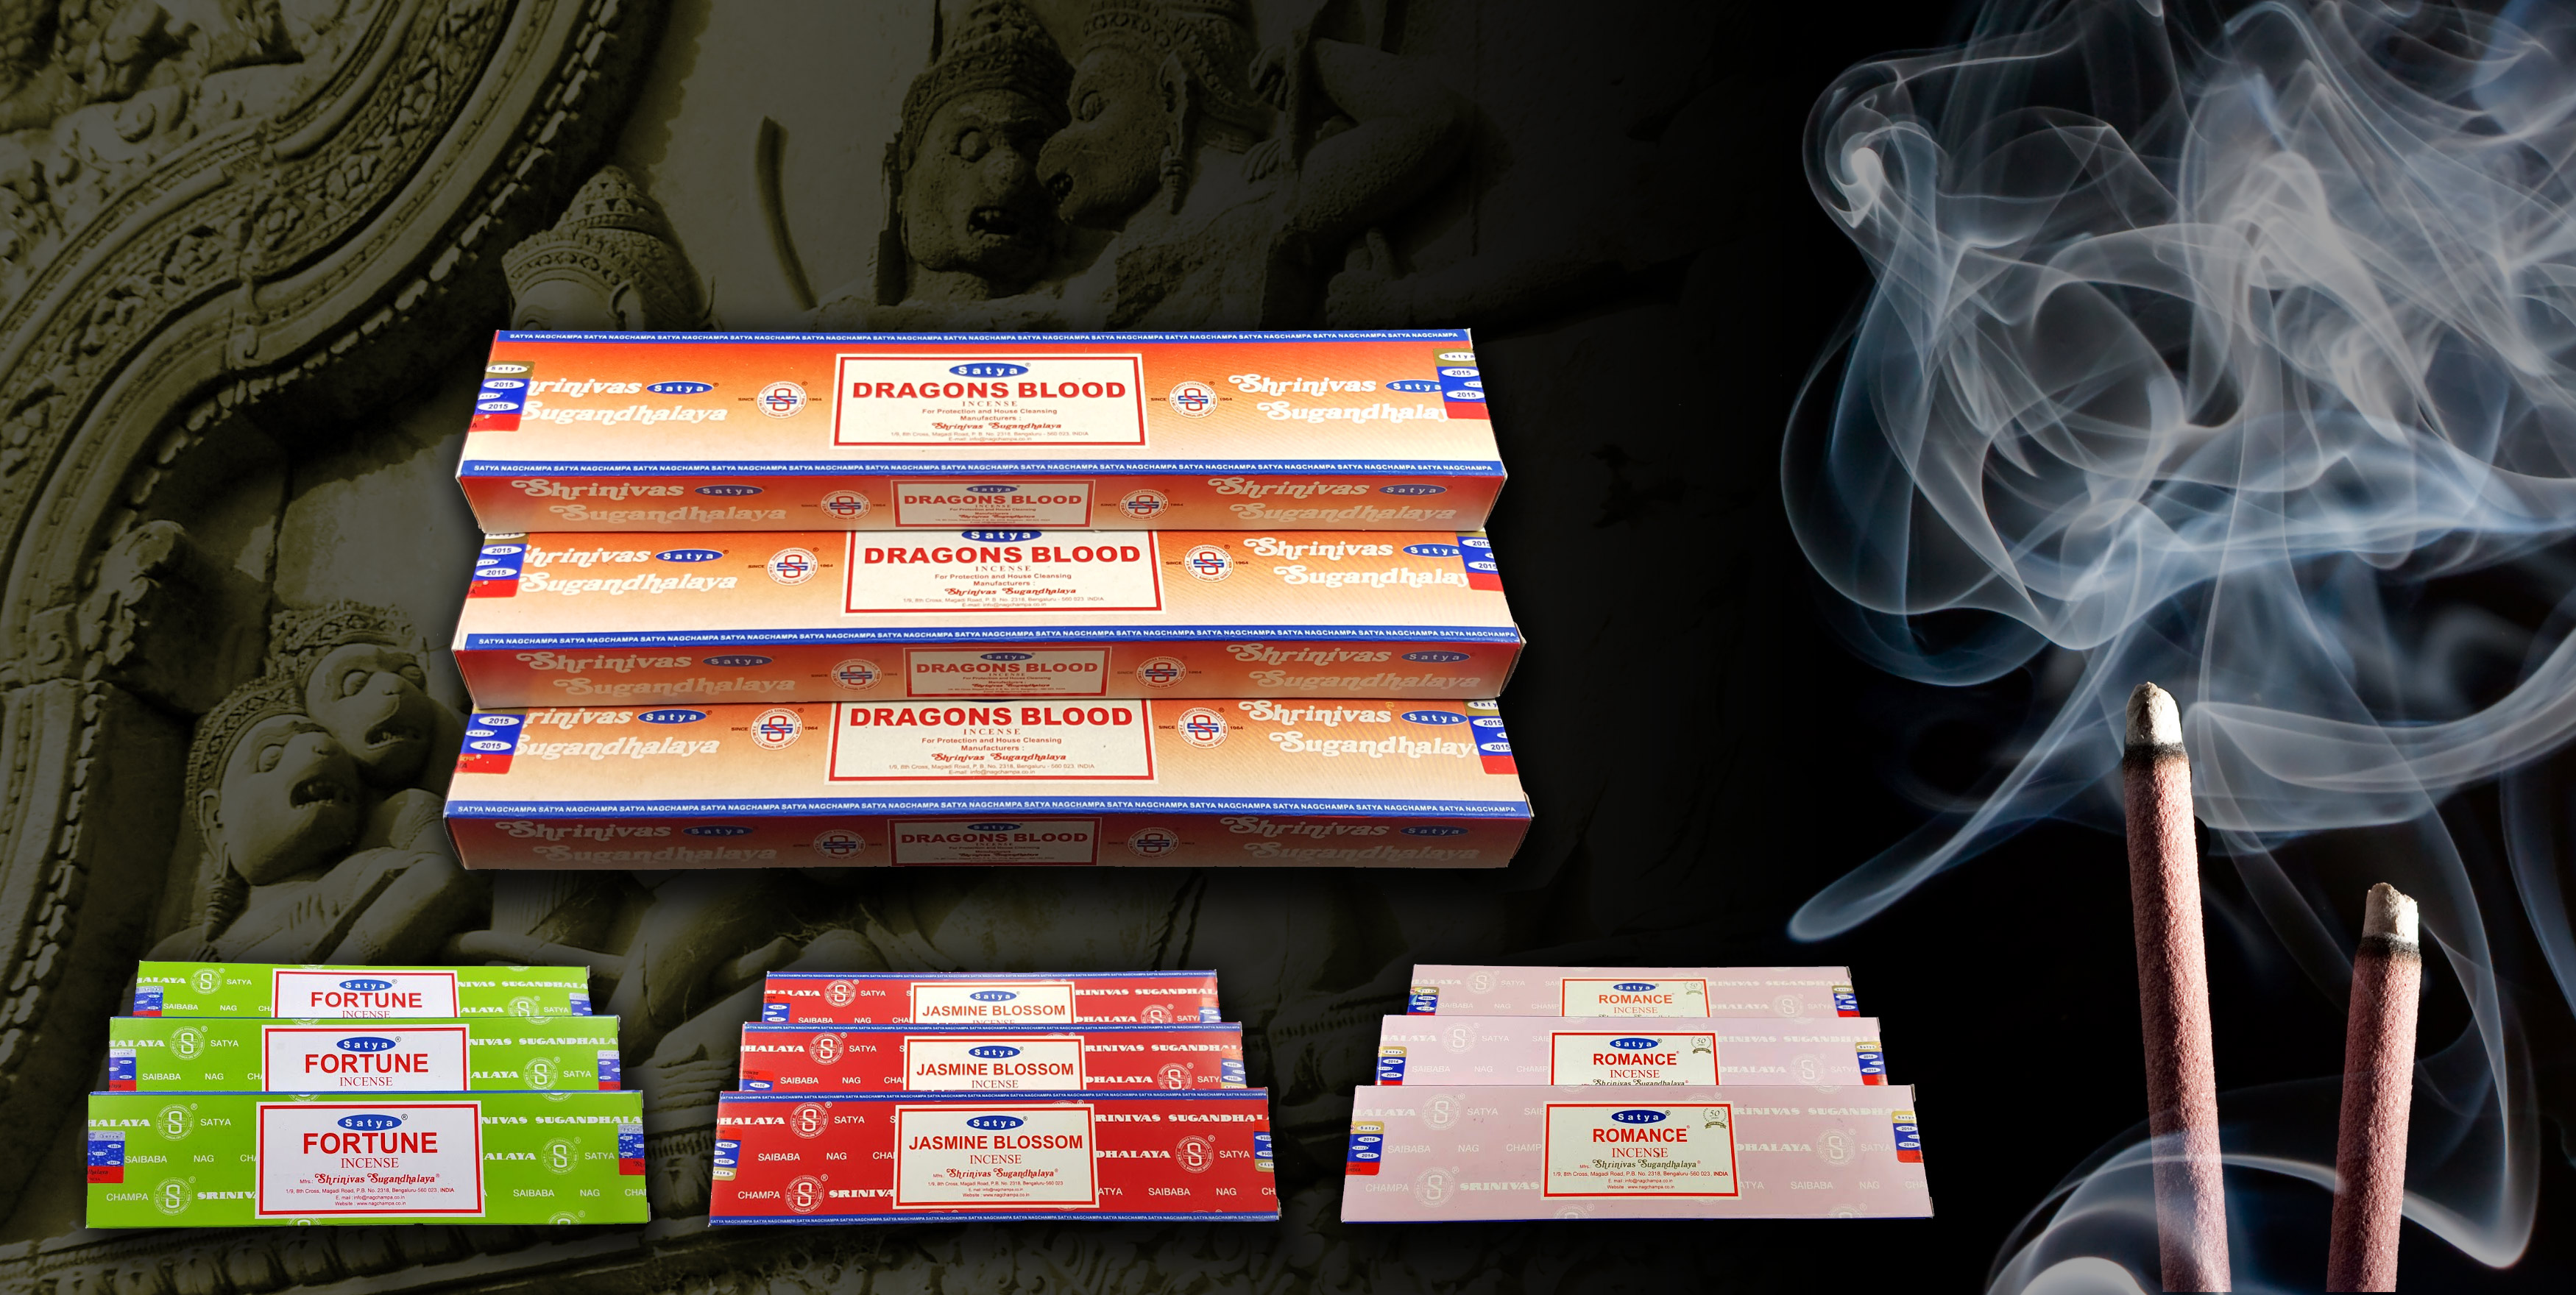 Satya Indian Incense Sticks, Nag Champa, Dragons Blood, Etc